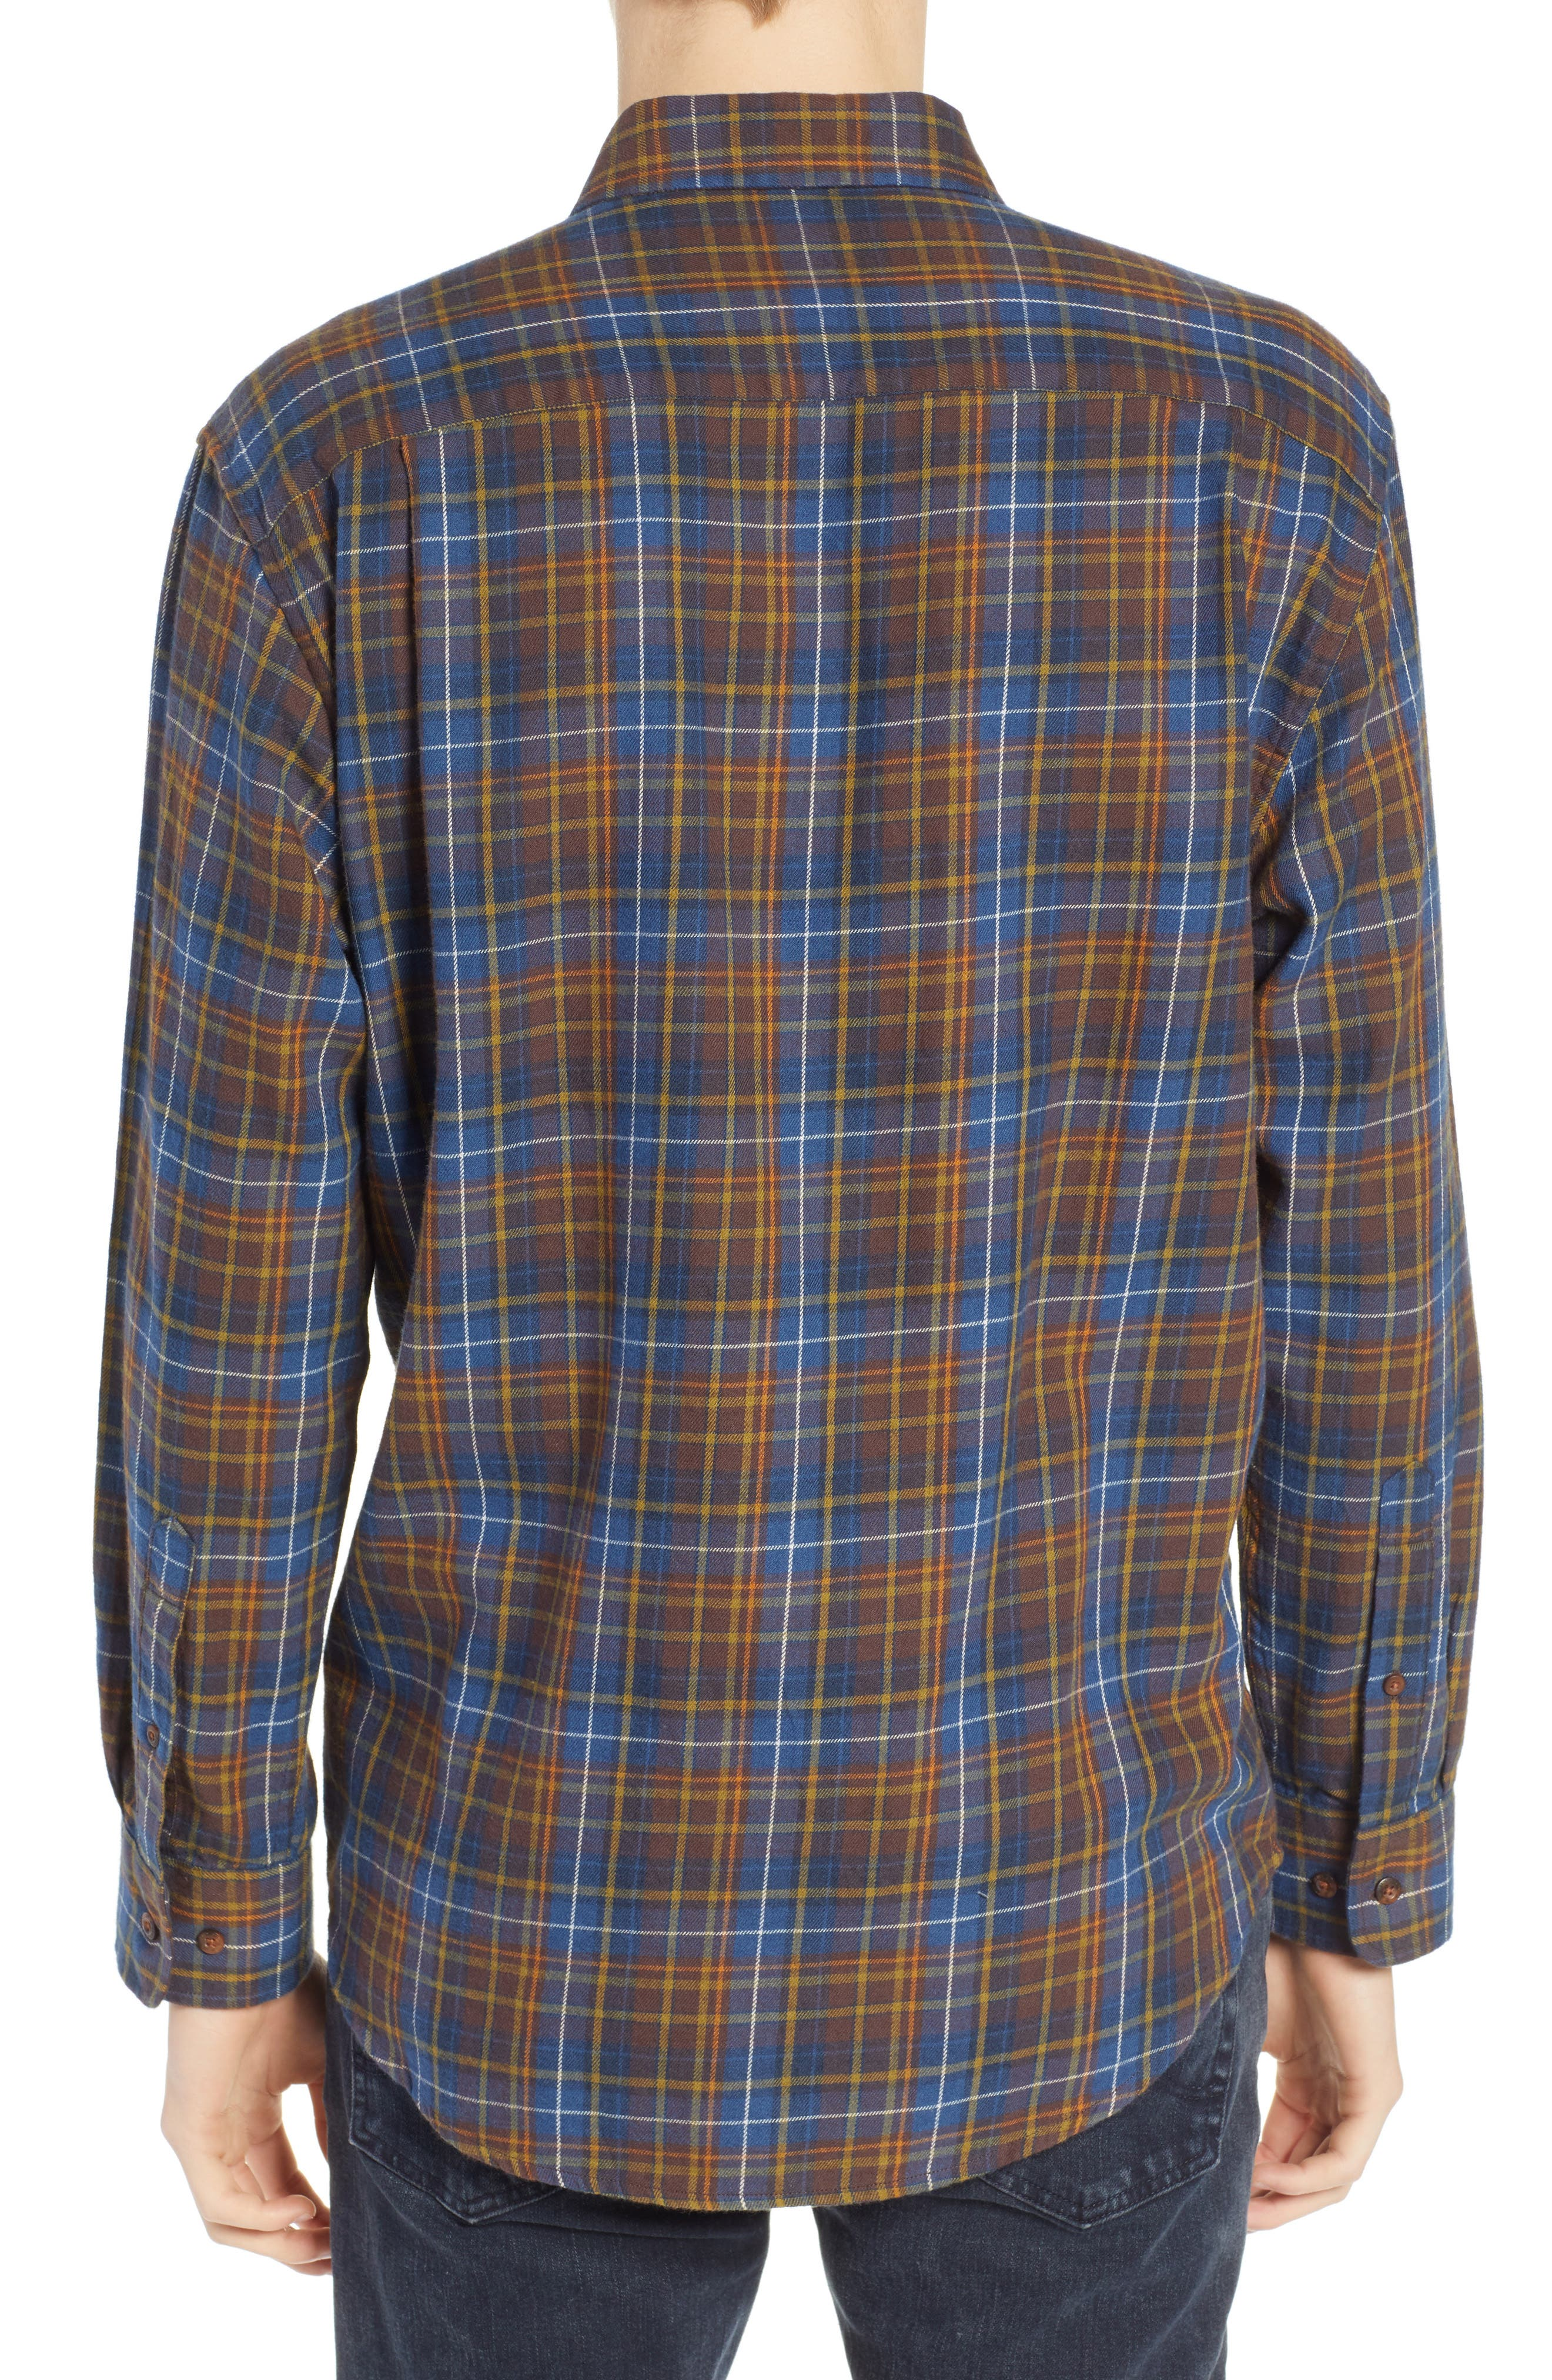 Bridger Plaid Twill Shirt,                             Alternate thumbnail 3, color,                             BLUE/ BROWN/ GREEN PLAID